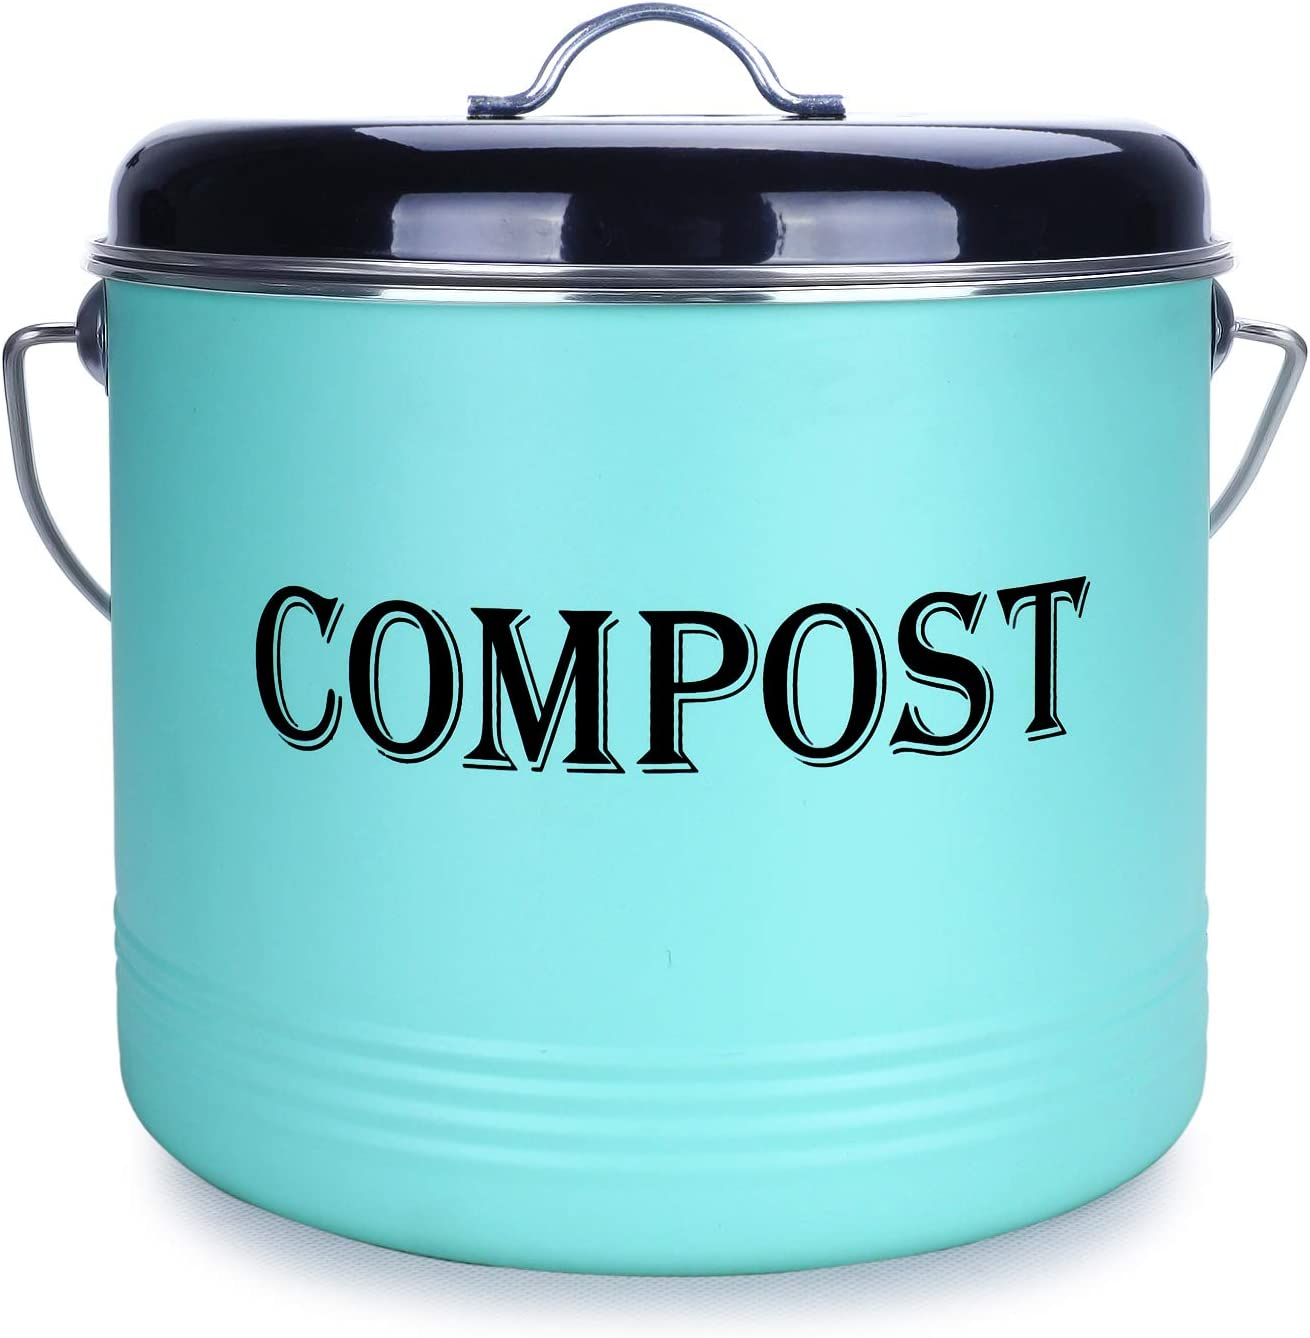 1.3 Gal Compost Bin for Kitchen Countertop With 7 BONUS Charcoal Filters - Vintage Indoor Scraps Compost Bucket With Lid-Flies/Odor Proof Compost Container Kitchen Pail, Recycling Caddy, Mint&Black